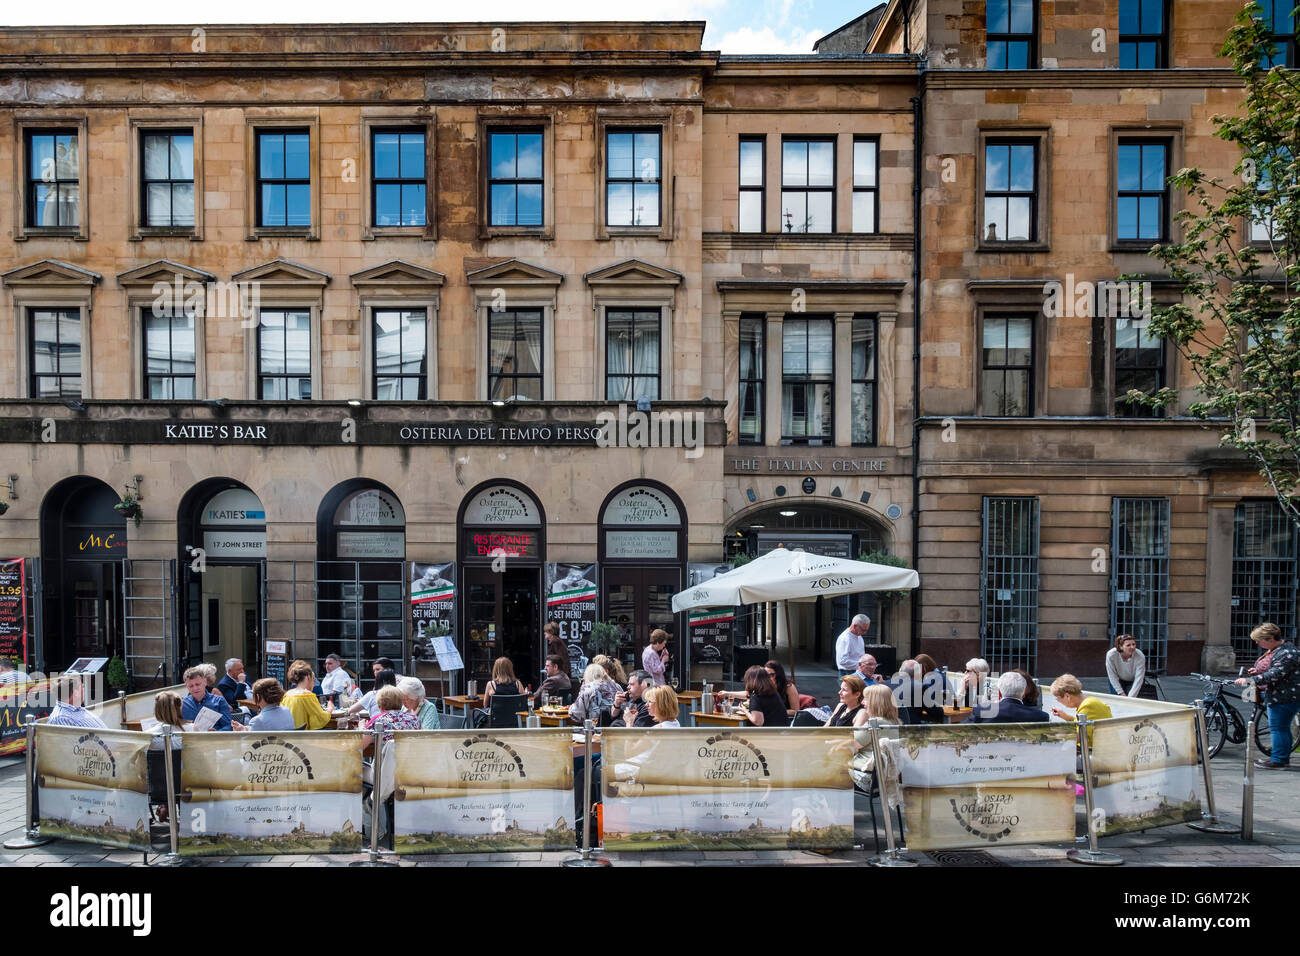 Outdoor restaurant on street at Italian Centre in Merchant City district of Glasgow, Scotland, United Kingdom - Stock Image